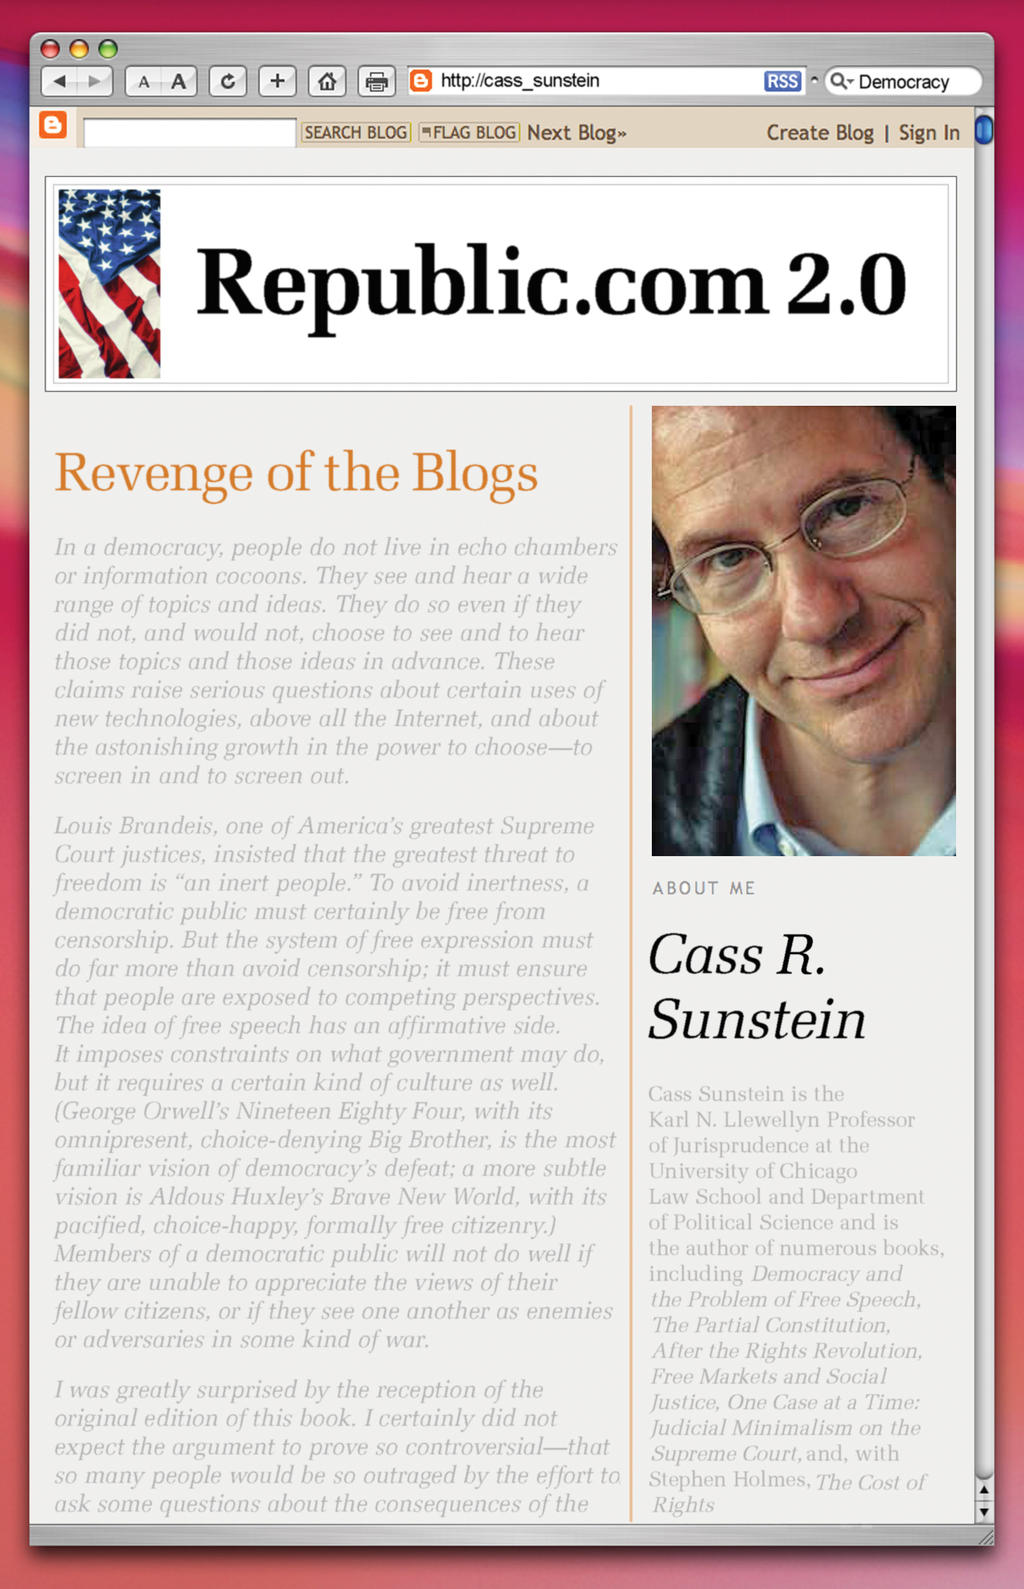 Republic.com 2.0 By: Cass R. Sunstein